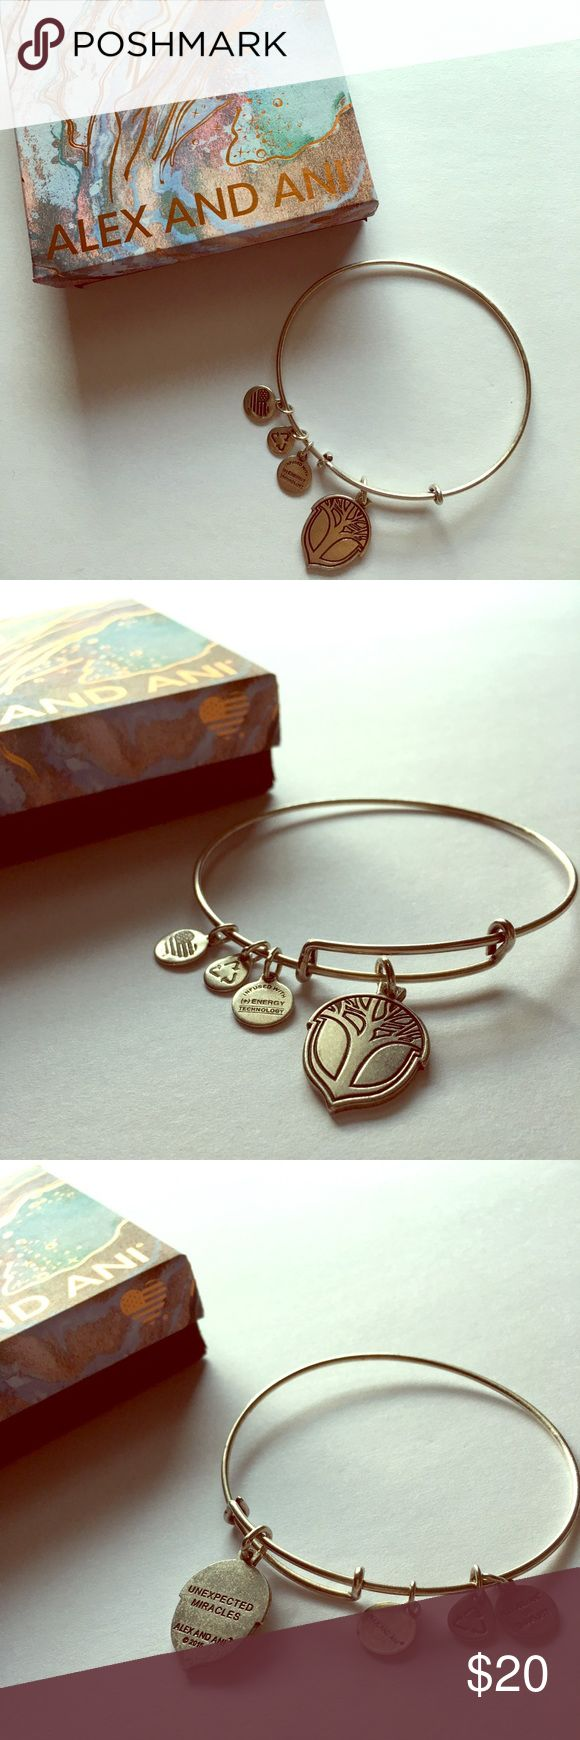 """Alex and Ani Bracelet The """"Unexpected Miracles"""" Acorn bracelet by Alex and Ani. Super cute! Excellent Used condition. Has been stored with similar bracelets to keep from tarnishing. Comes with original box for safe keeping. Alex & Ani Jewelry Bracelets"""